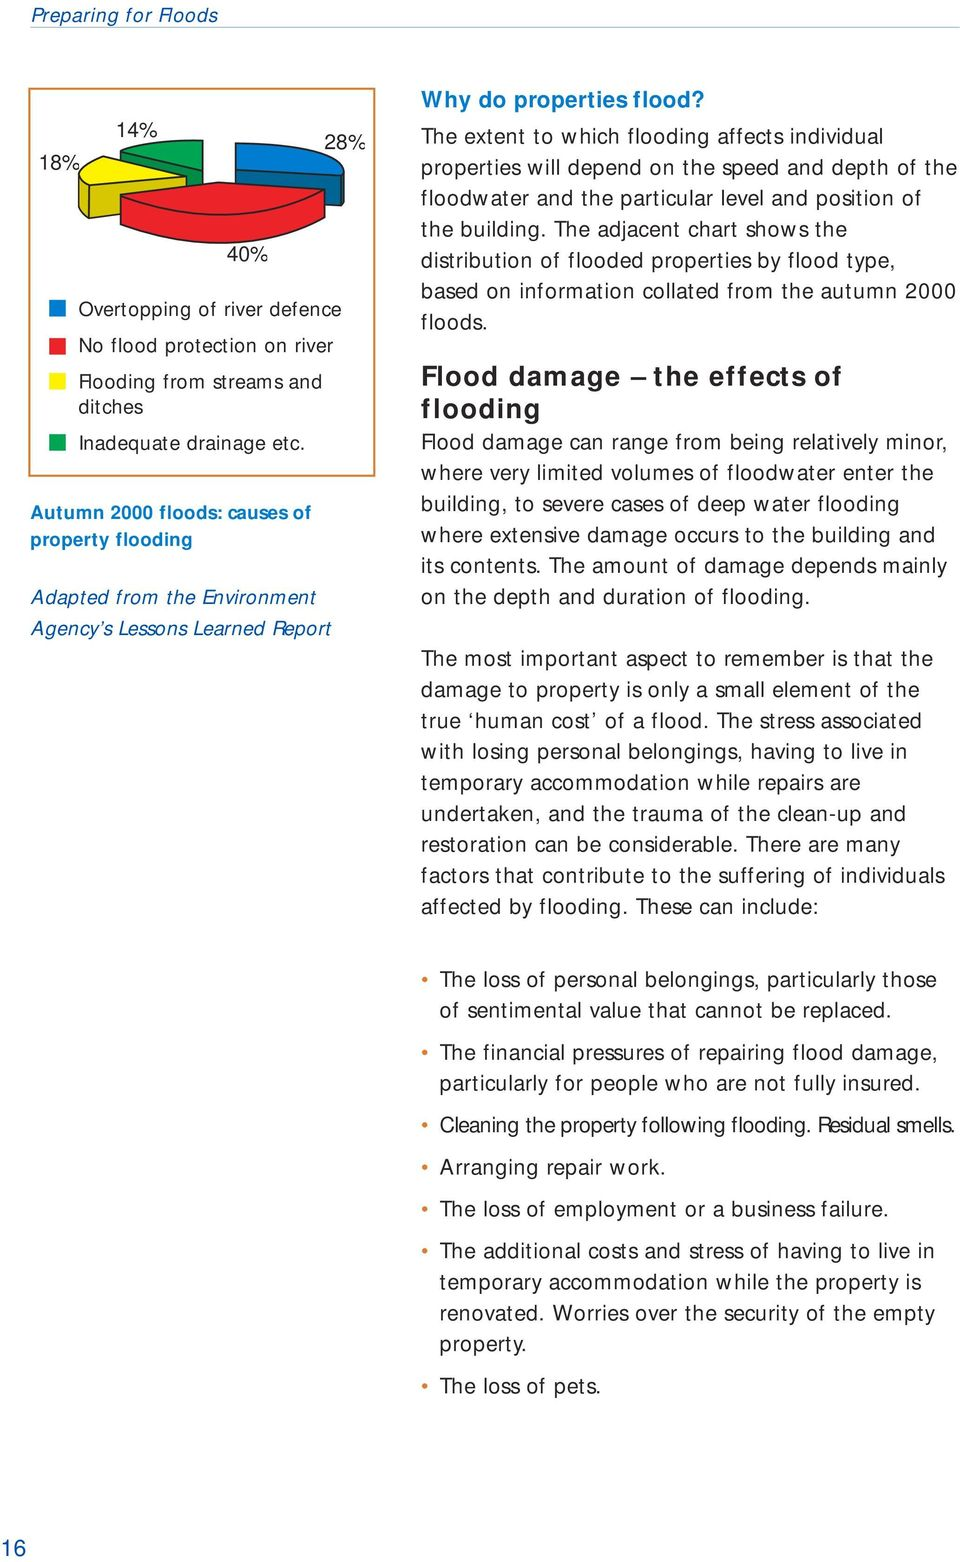 The extent to which flooding affects individual properties will depend on the speed and depth of the floodwater and the particular level and position of the building.